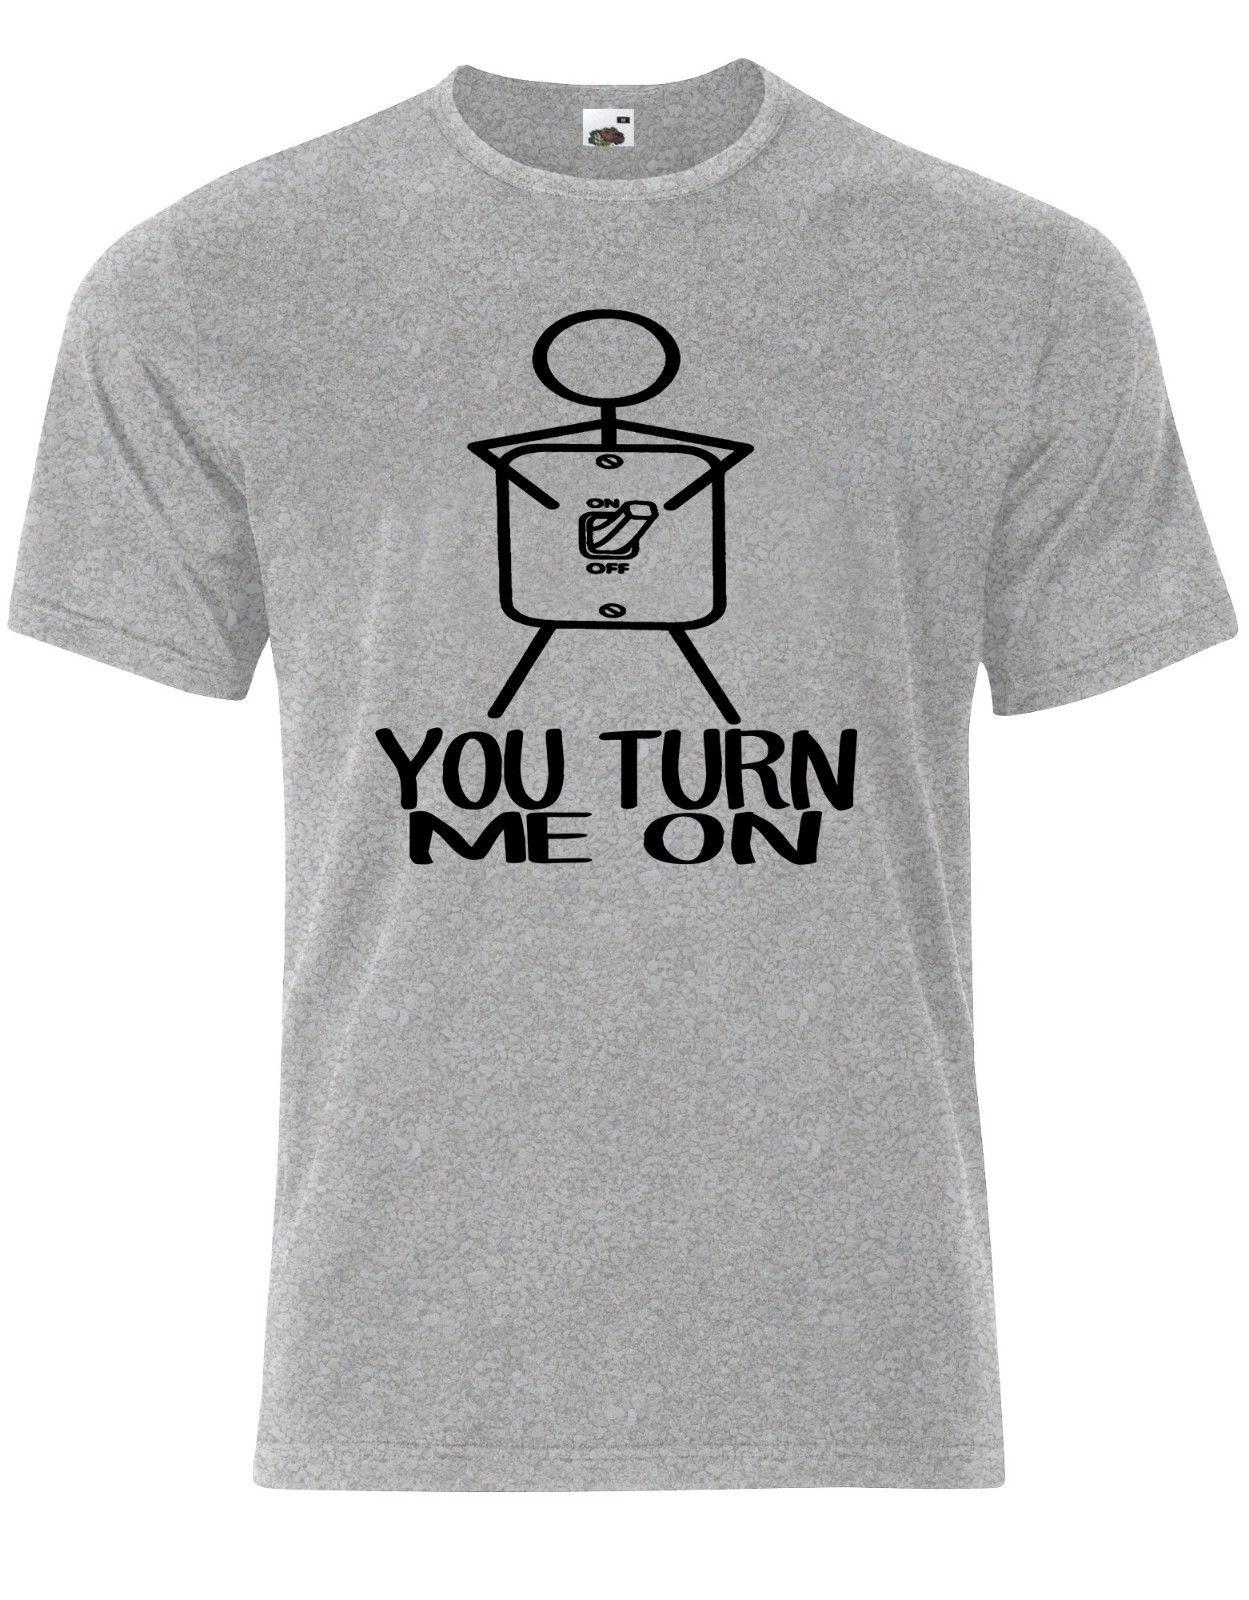 0fed26c4 You Turn Me On Funny Quote Stick Figure Light Switch On Off Men T Shirt  AM61 Size Discout 100% Cotton Hot New Tshirt Funny Tee Shirts Mens T Shirt  From ...